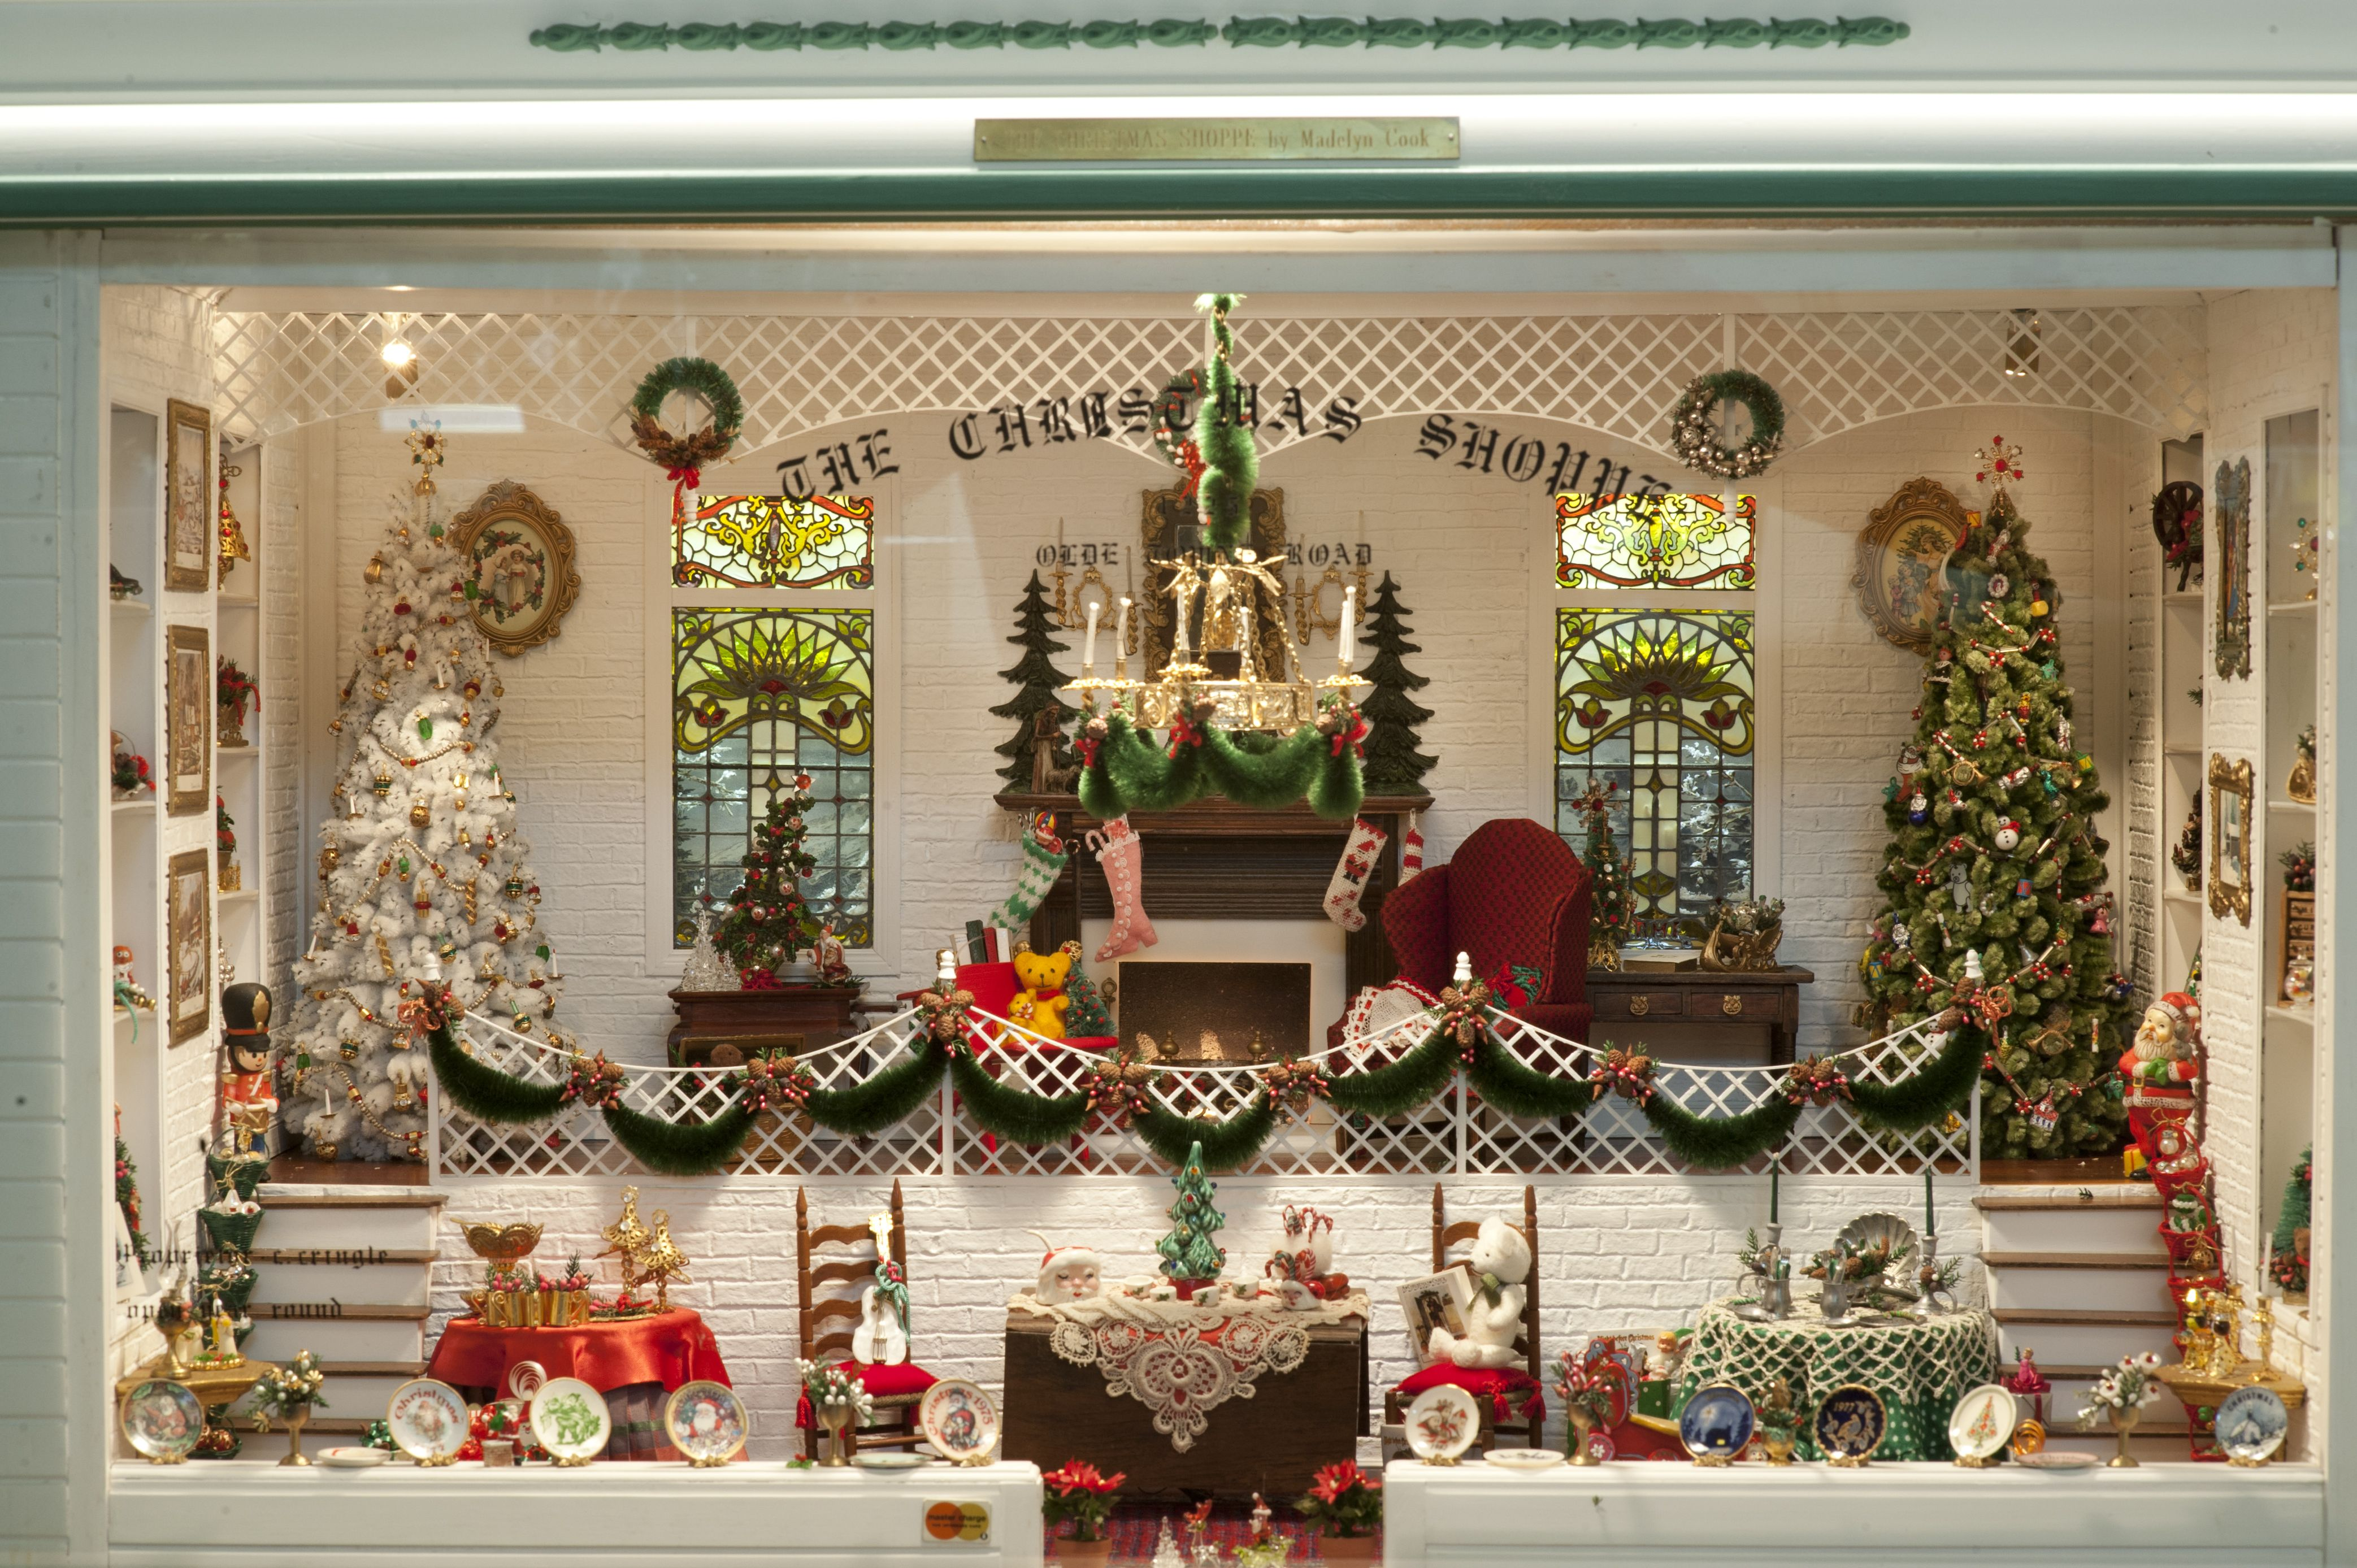 Christmas Miniatures.The Christmas Shoppe In The Mini Time Museum Of Miniatures